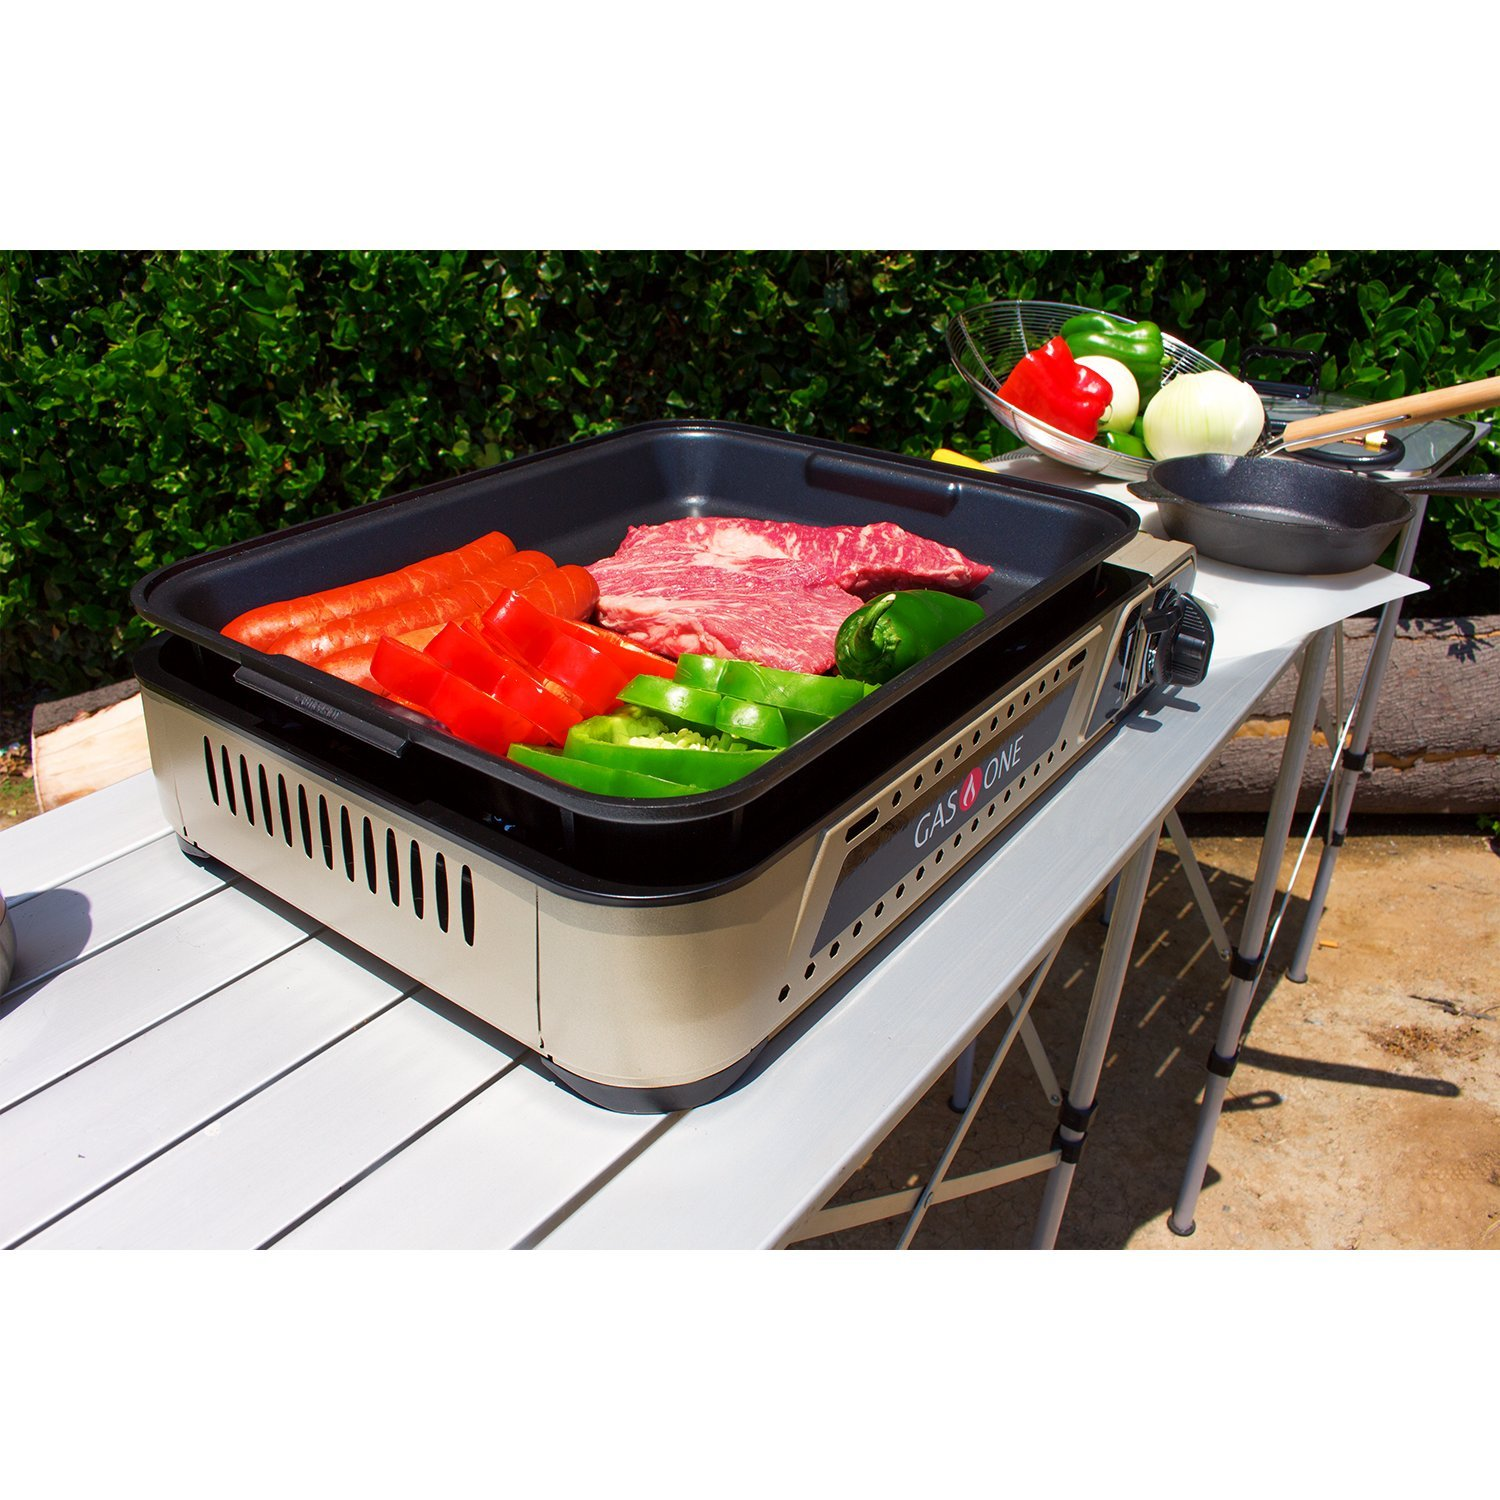 Portable Gas Grill Burner And Camping Griddle Propane And